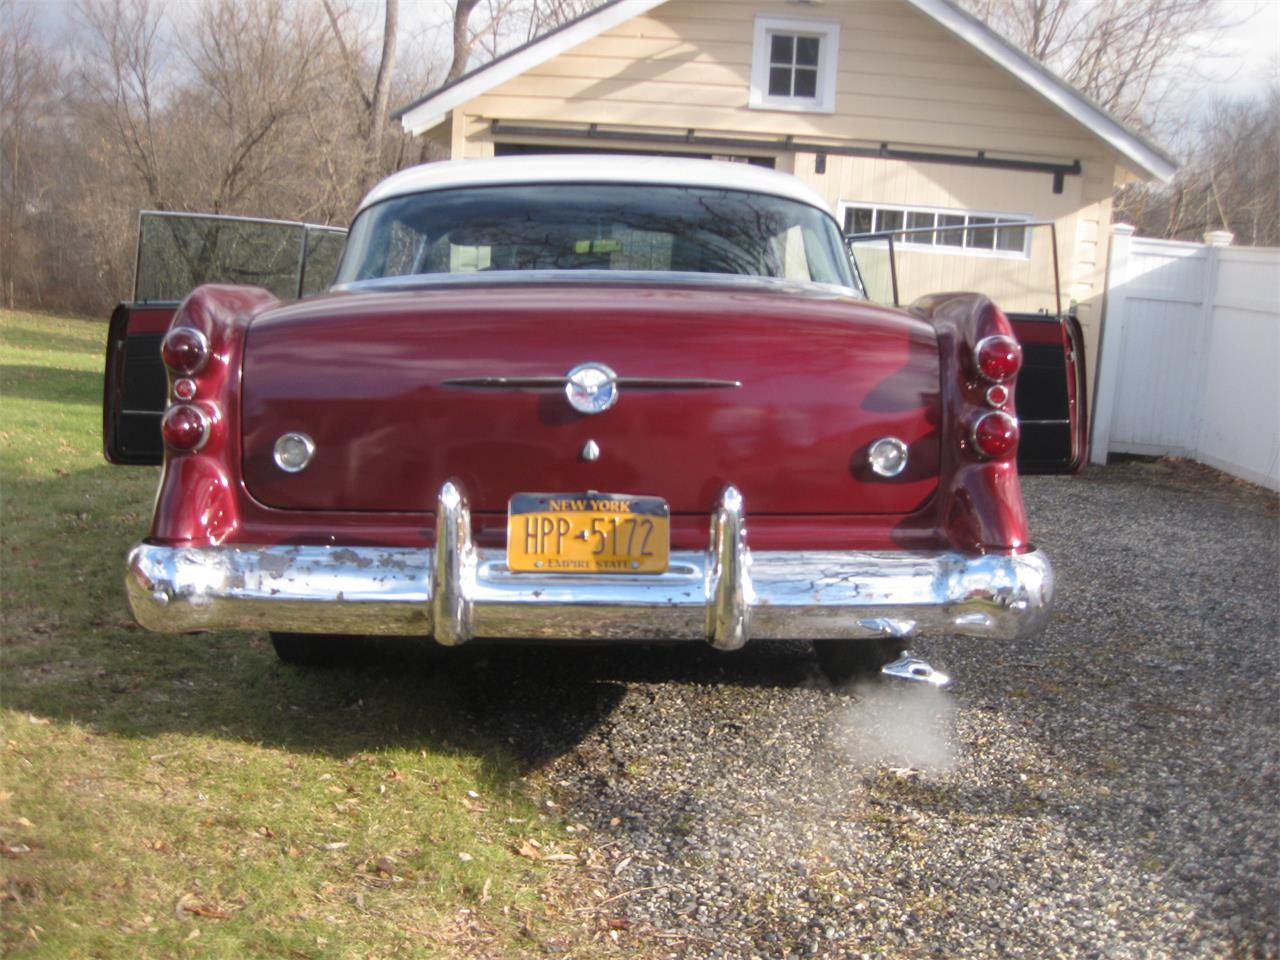 1954 Buick Special Riviera for sale in Hudson, NY – photo 10